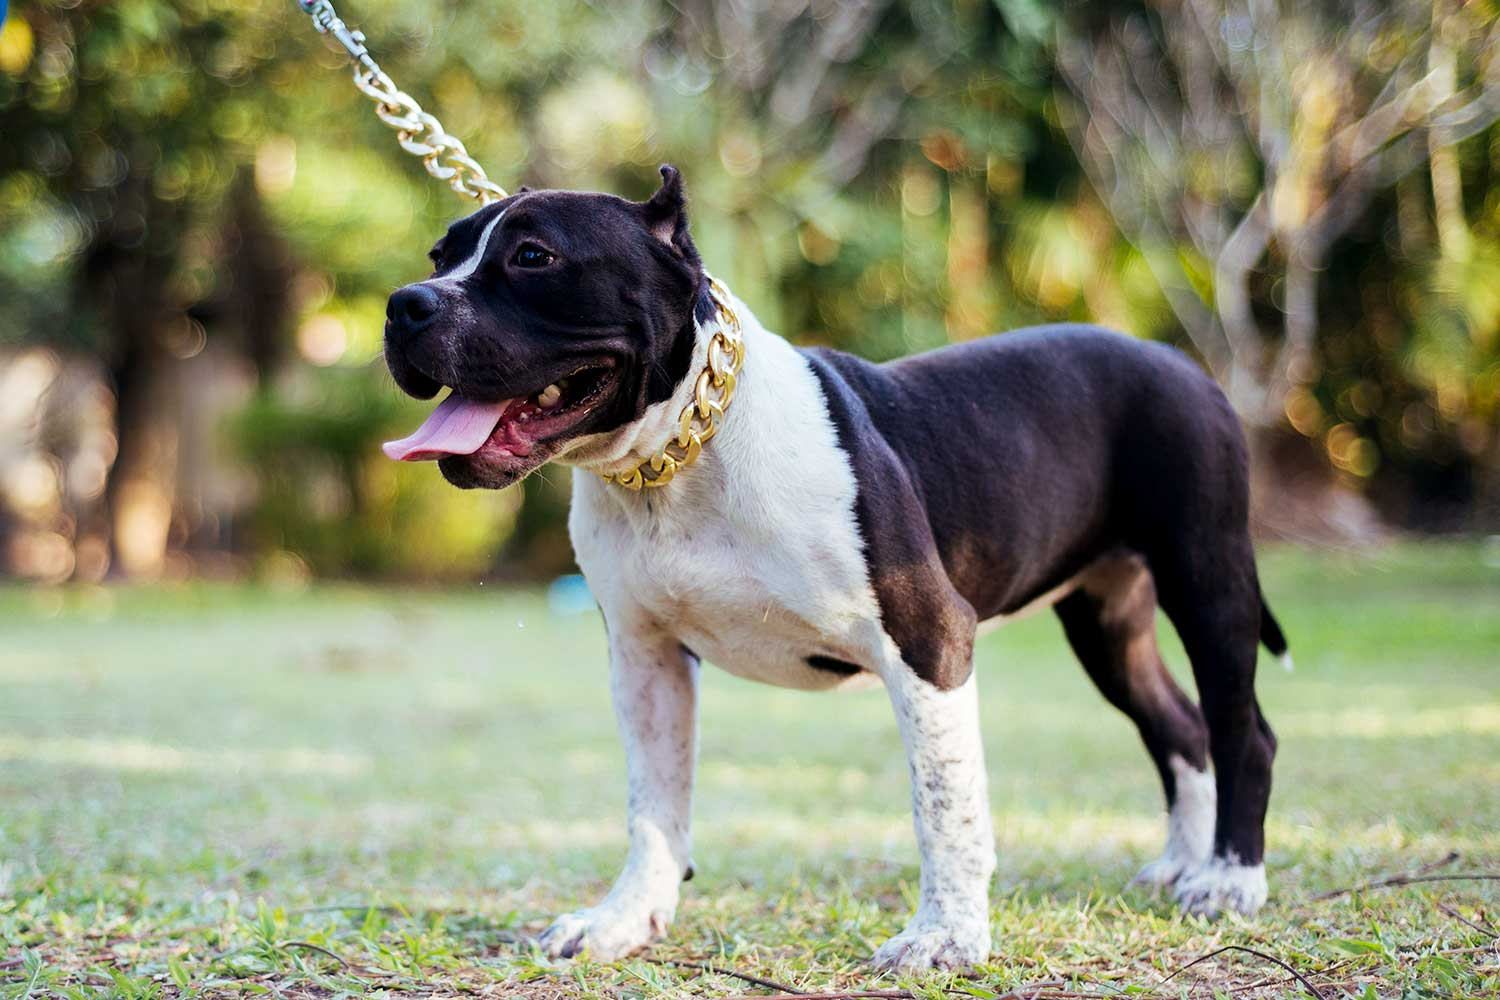 Female American Bully Thailand - Kha